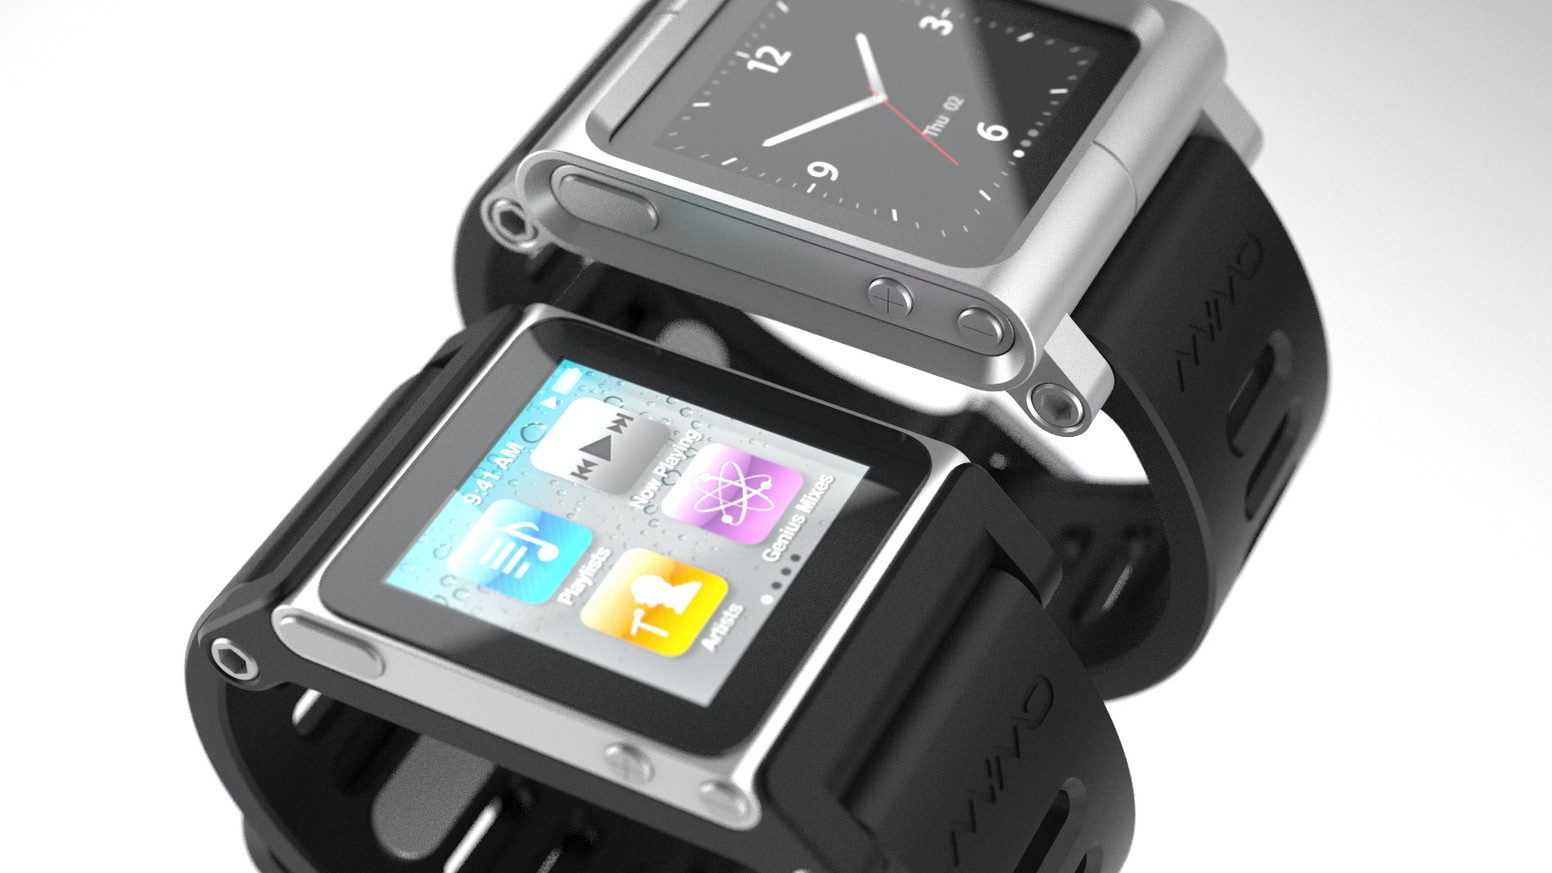 Transform your iPod Nano into the world's coolest multi-touch watches with TikTok + LunaTik by Scott Wilson and MINIMAL.